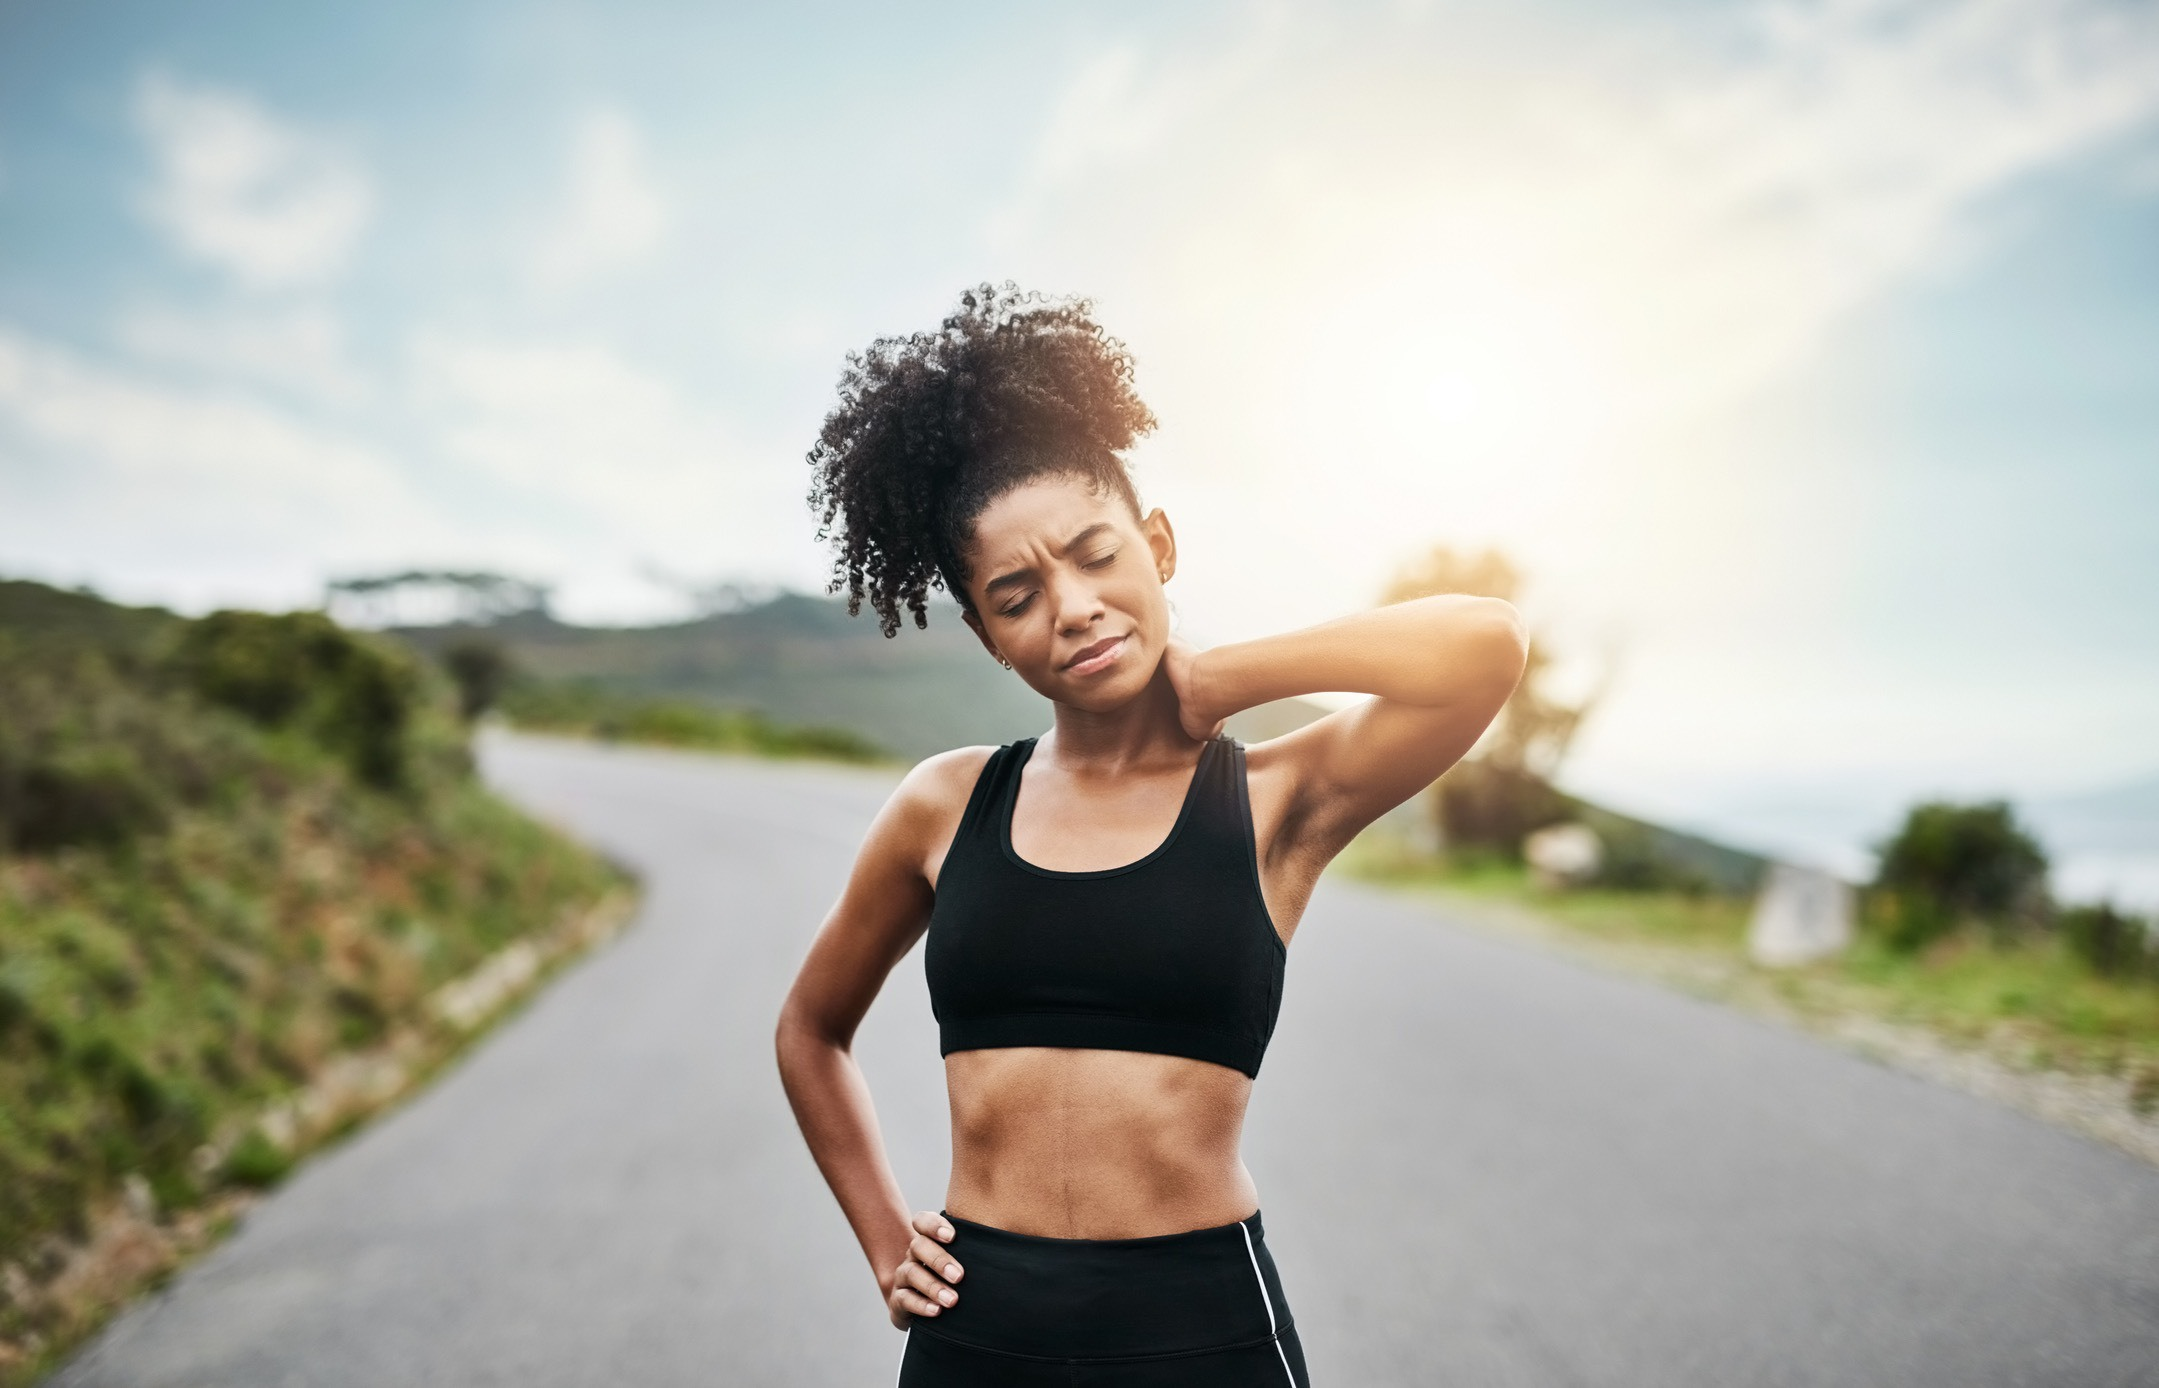 Woman on a run stopping to rub her neck